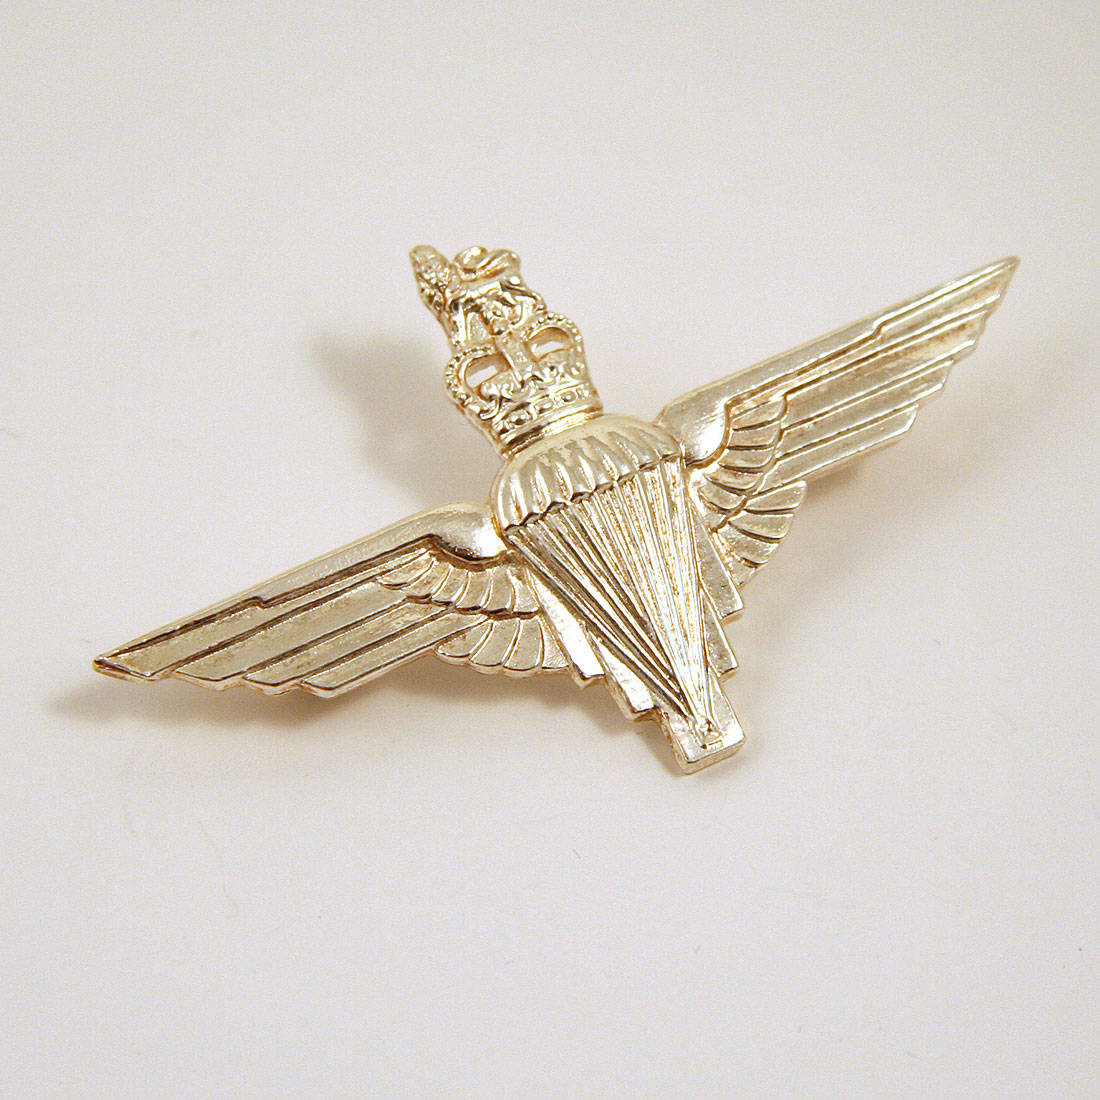 Sterling Silver Parachute Regiment Cap Badge (Brooch Fitting)